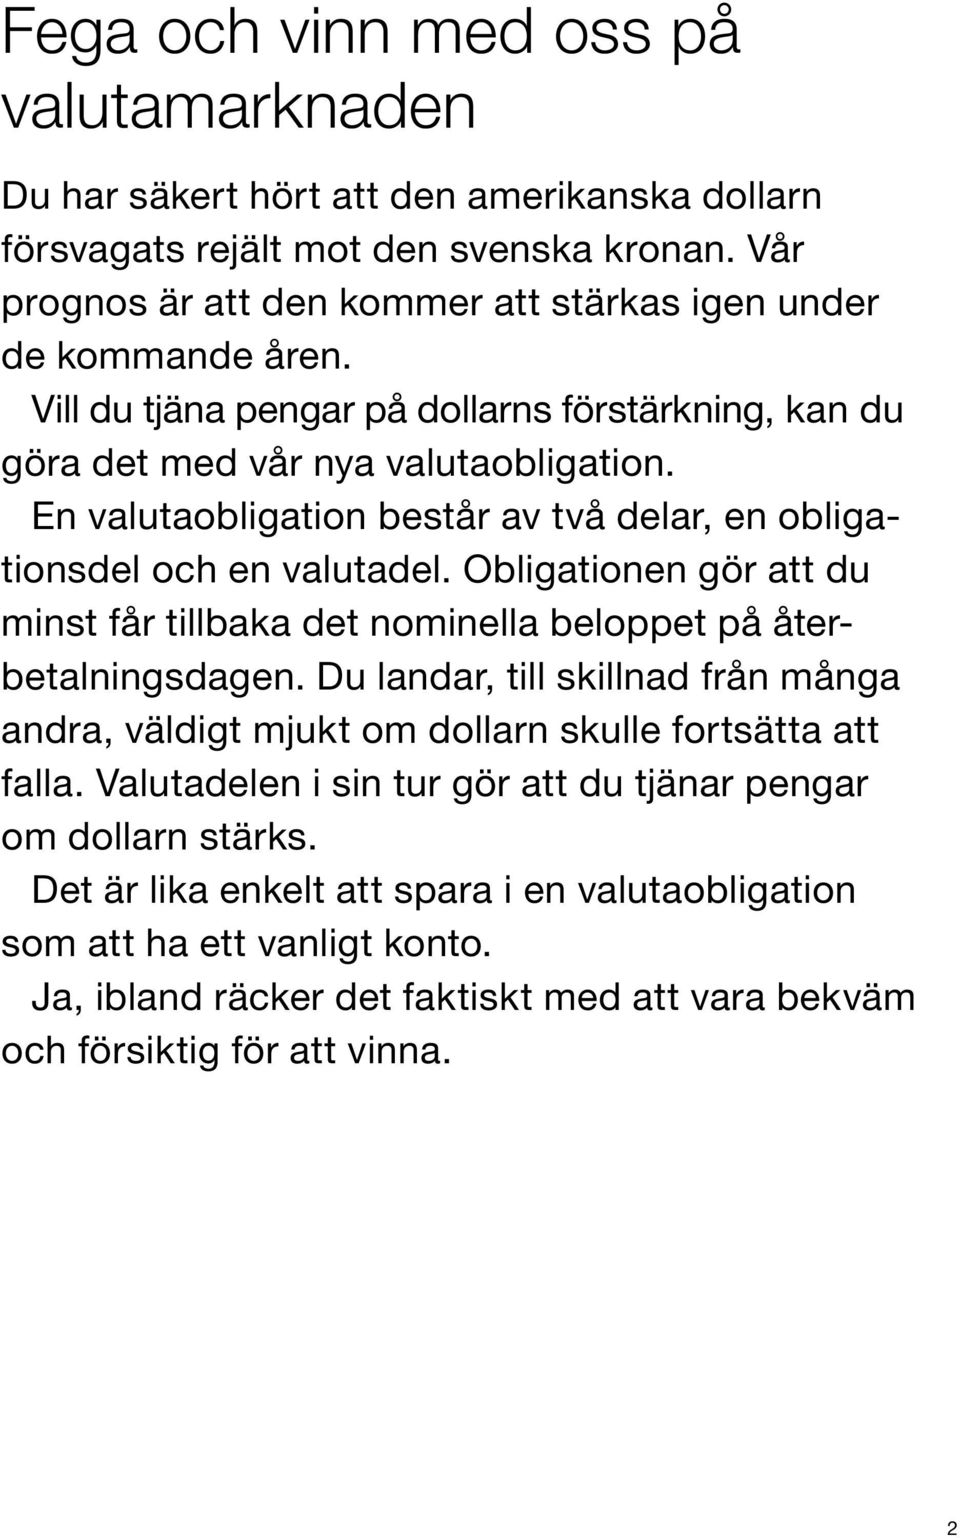 En valutaobligation består av två delar, en obligationsdel och en valutadel. Obligationen gör att du minst får tillbaka det nominella beloppet på återbetalningsdagen.